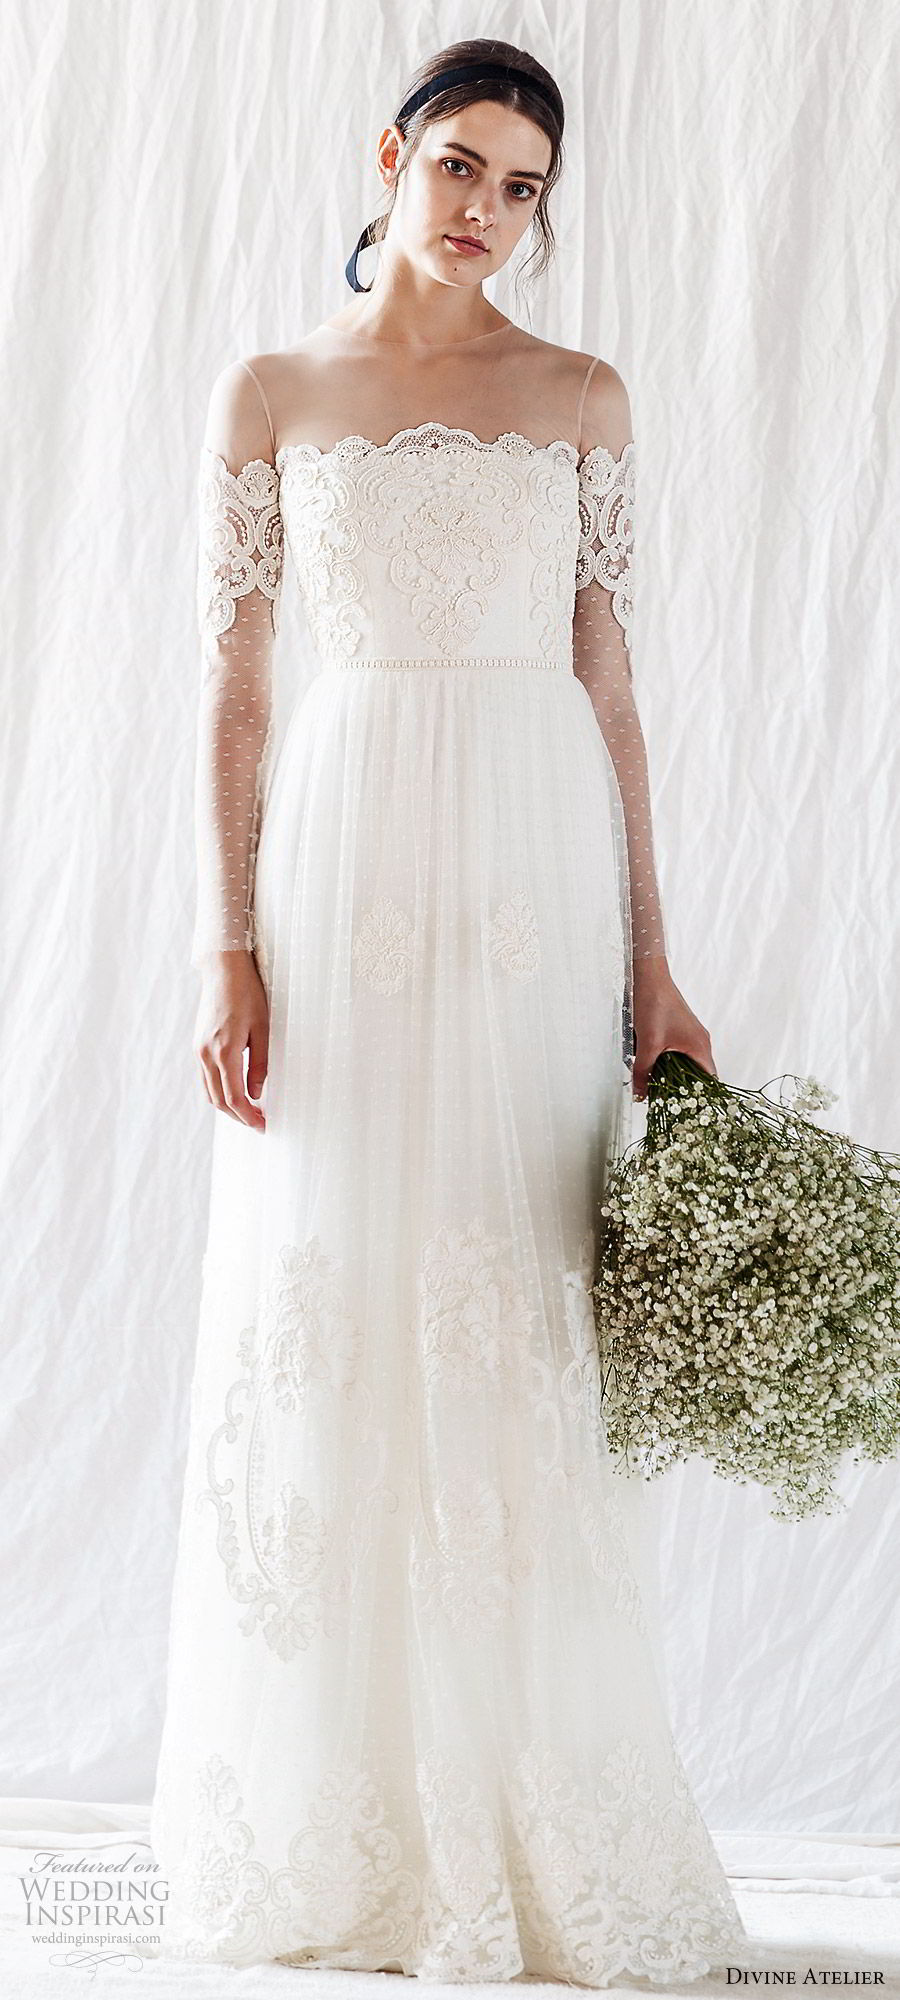 divine atelier 2019 bridal illusion long sleeves sheer crew neck straight across embellished bodice lace a line wedding dress (9) sheer back romantic whimsical mv